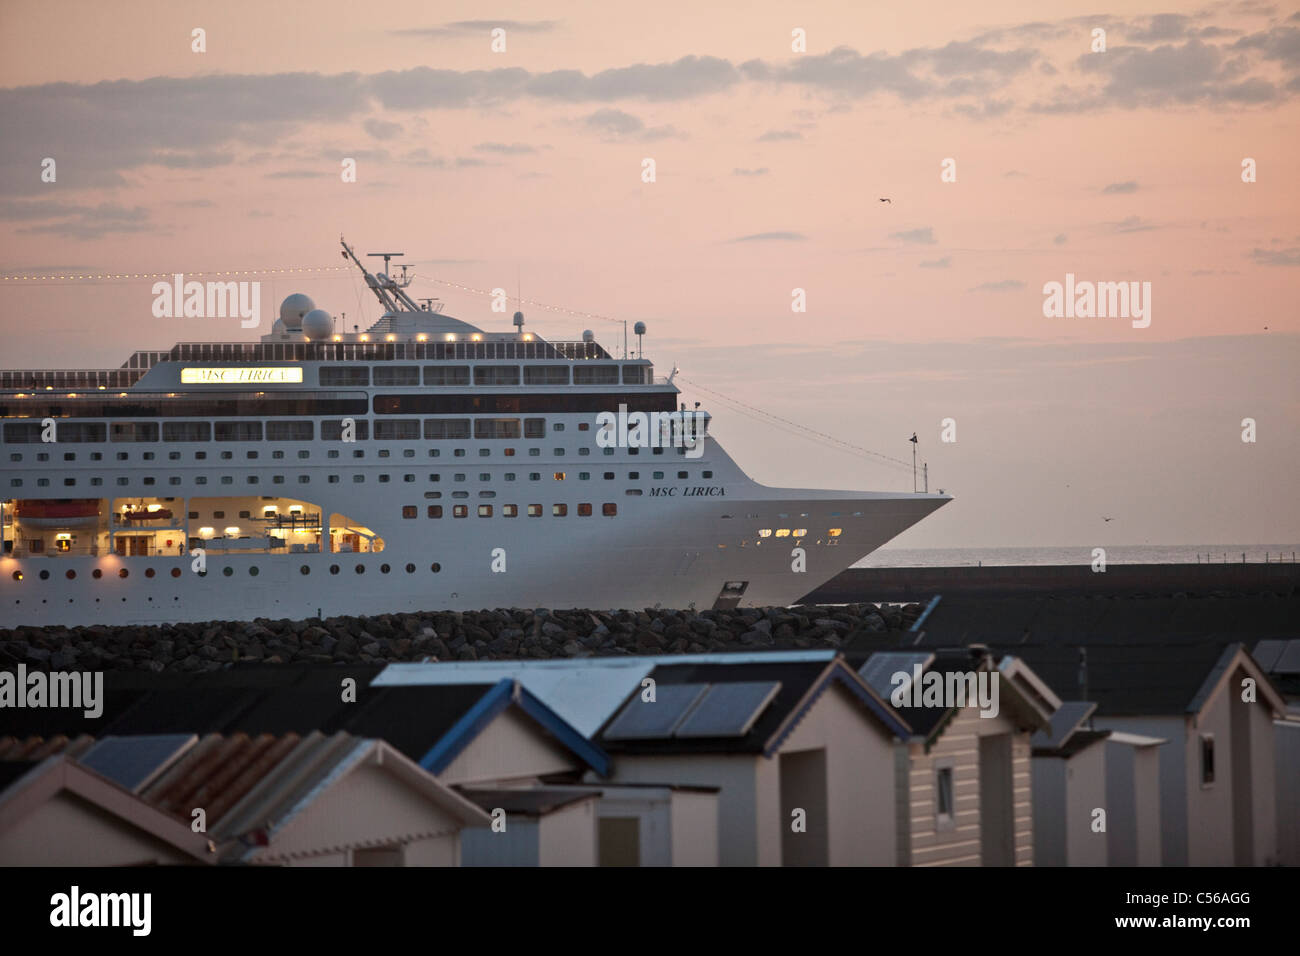 The Netherlands, IJmuiden, Cruise ship arriving at North Sea Canal. Sunrise. Beach cabins. - Stock Image